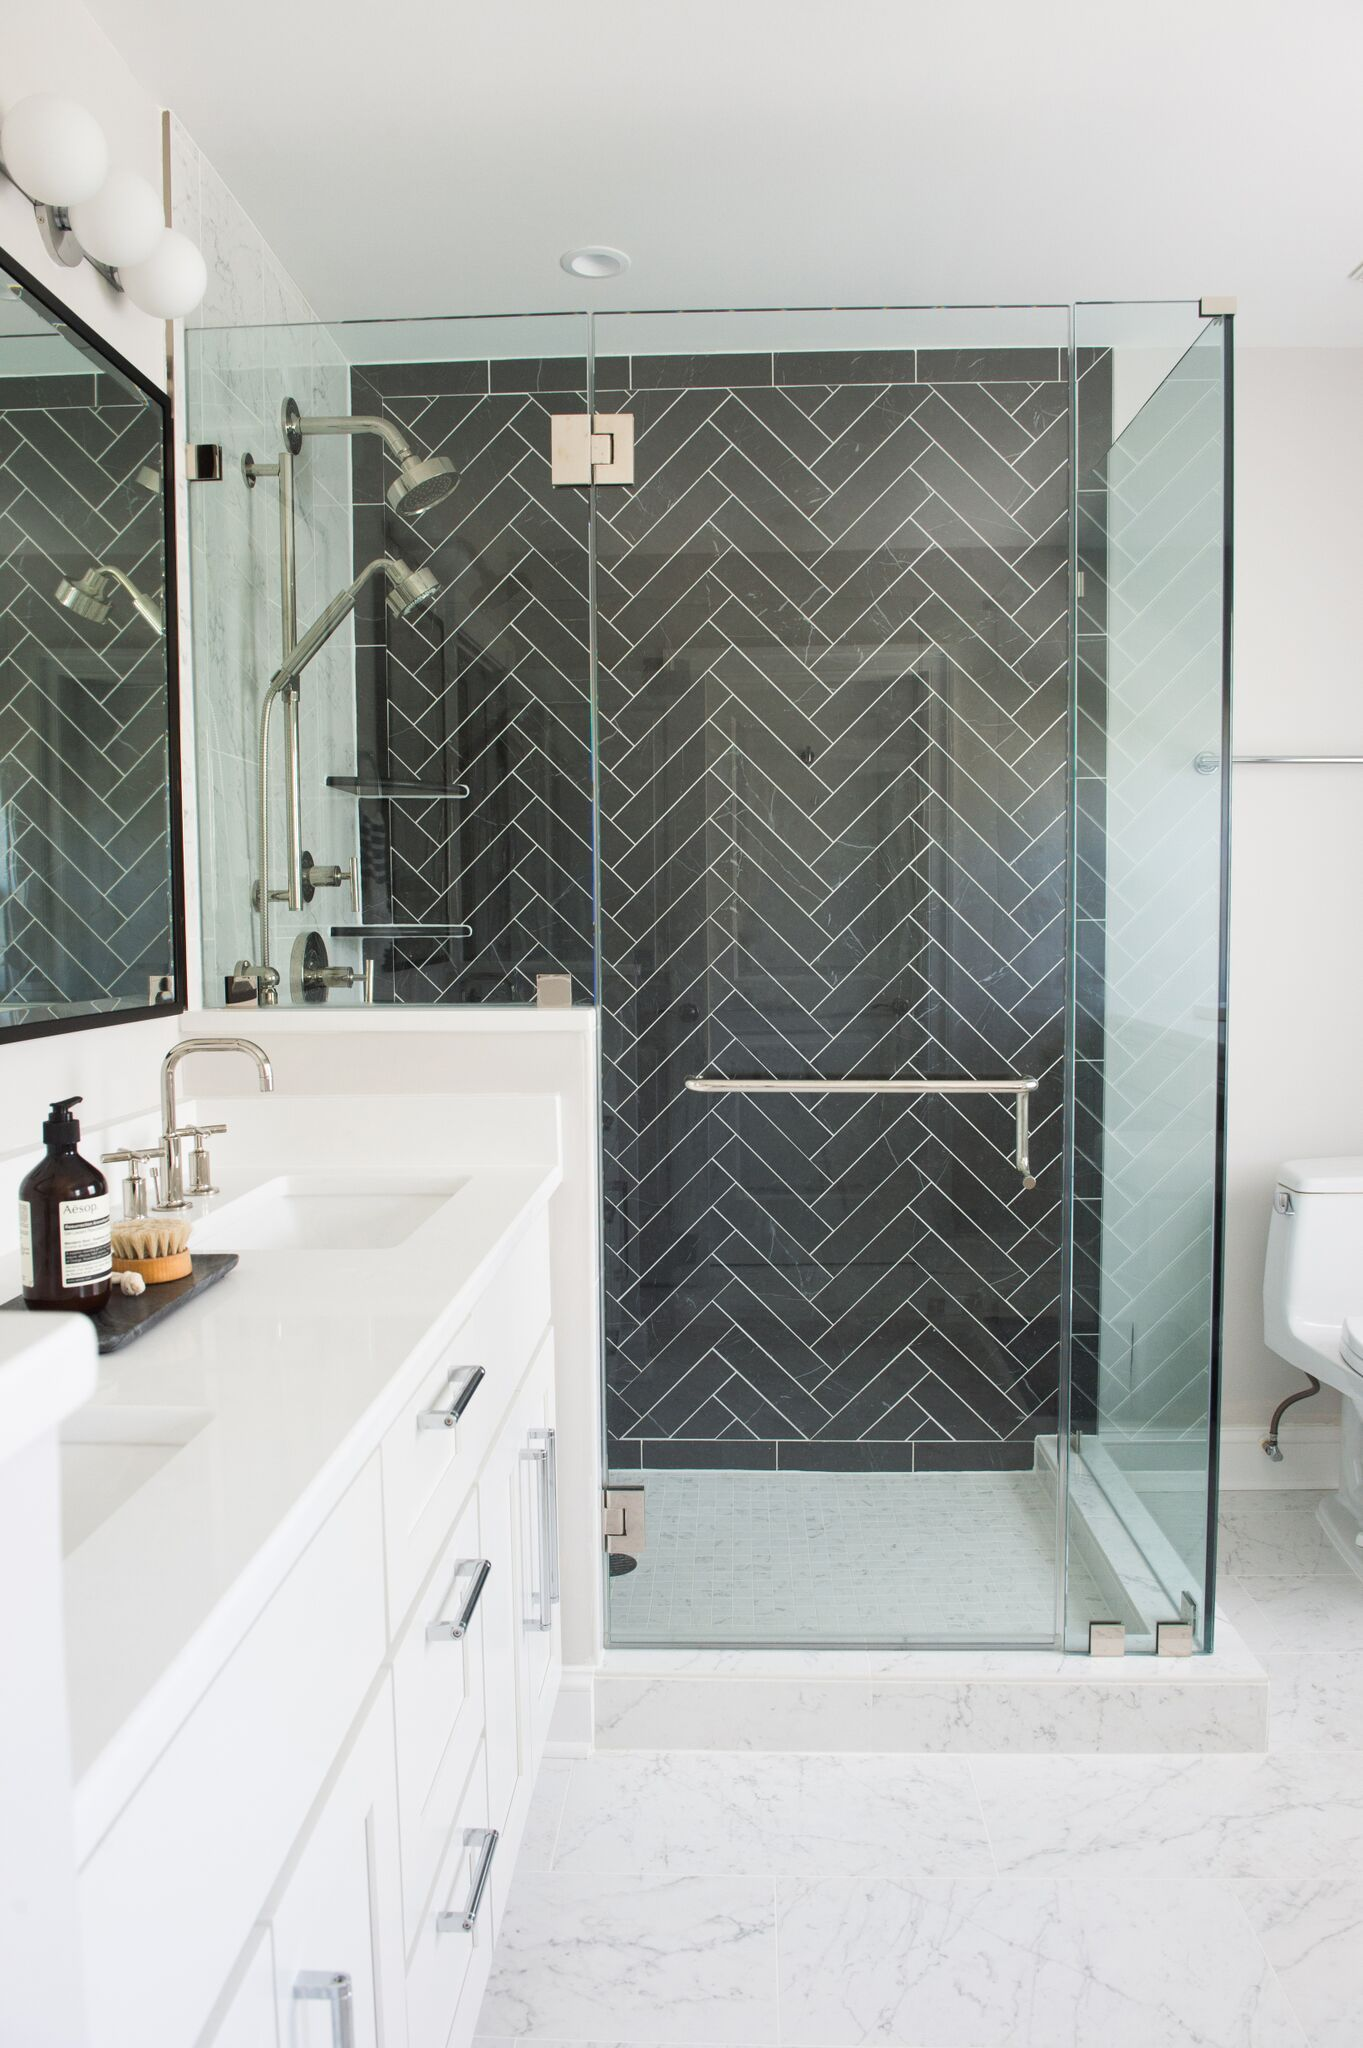 4x12 Herringbone Tile Floor